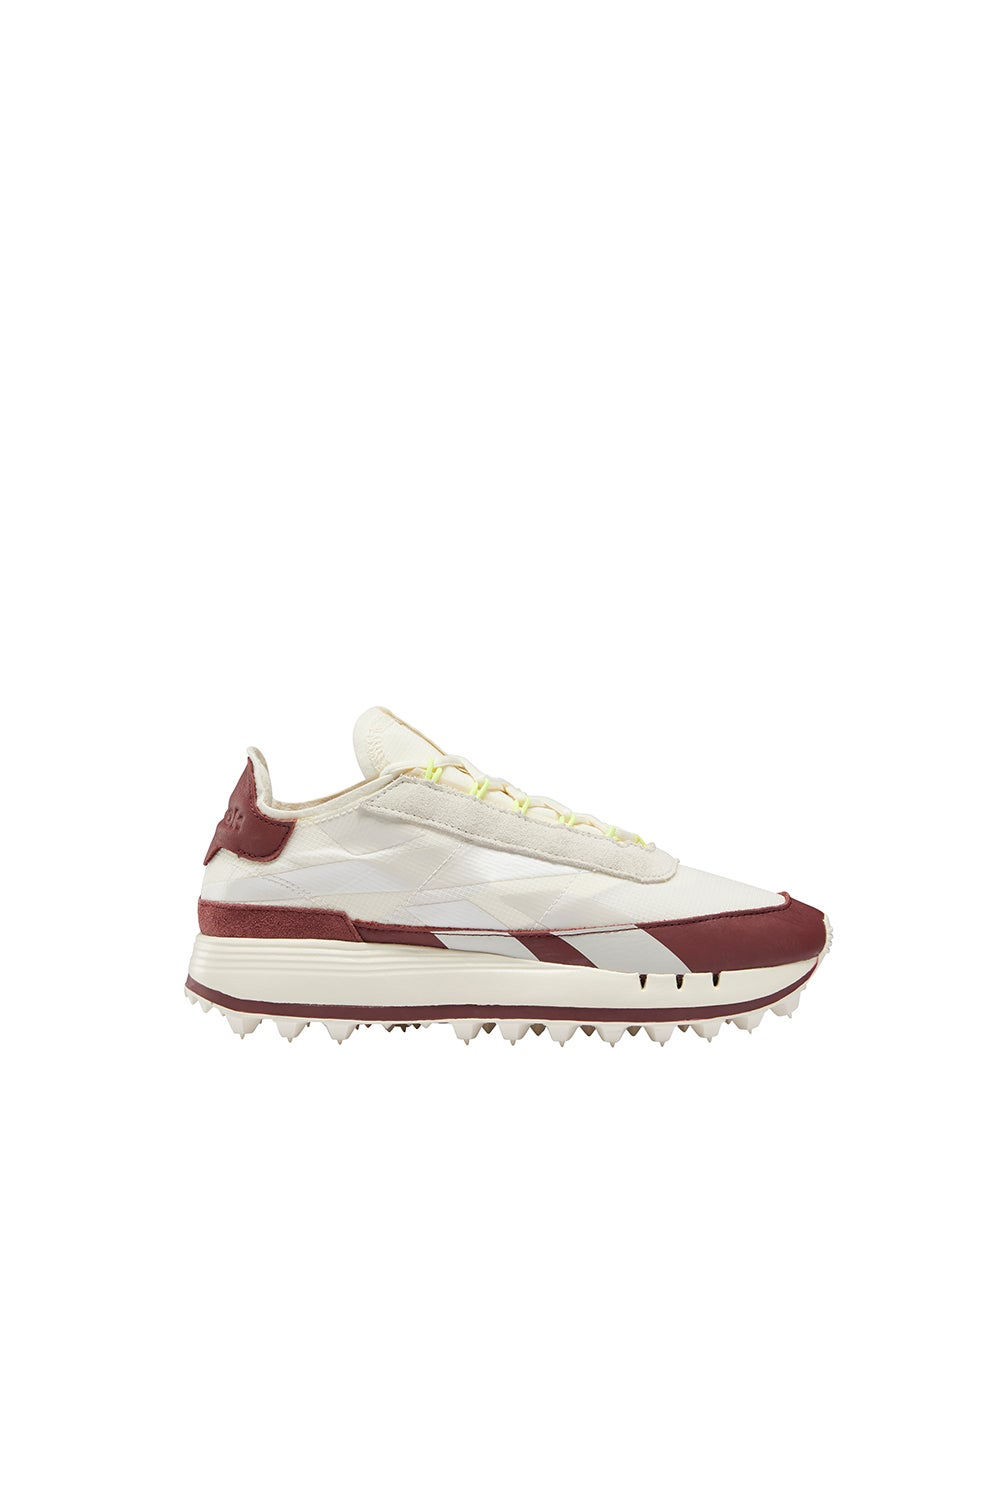 Reebok Legacy 83 Shoes Classic White/Rich Red/Morning Fog